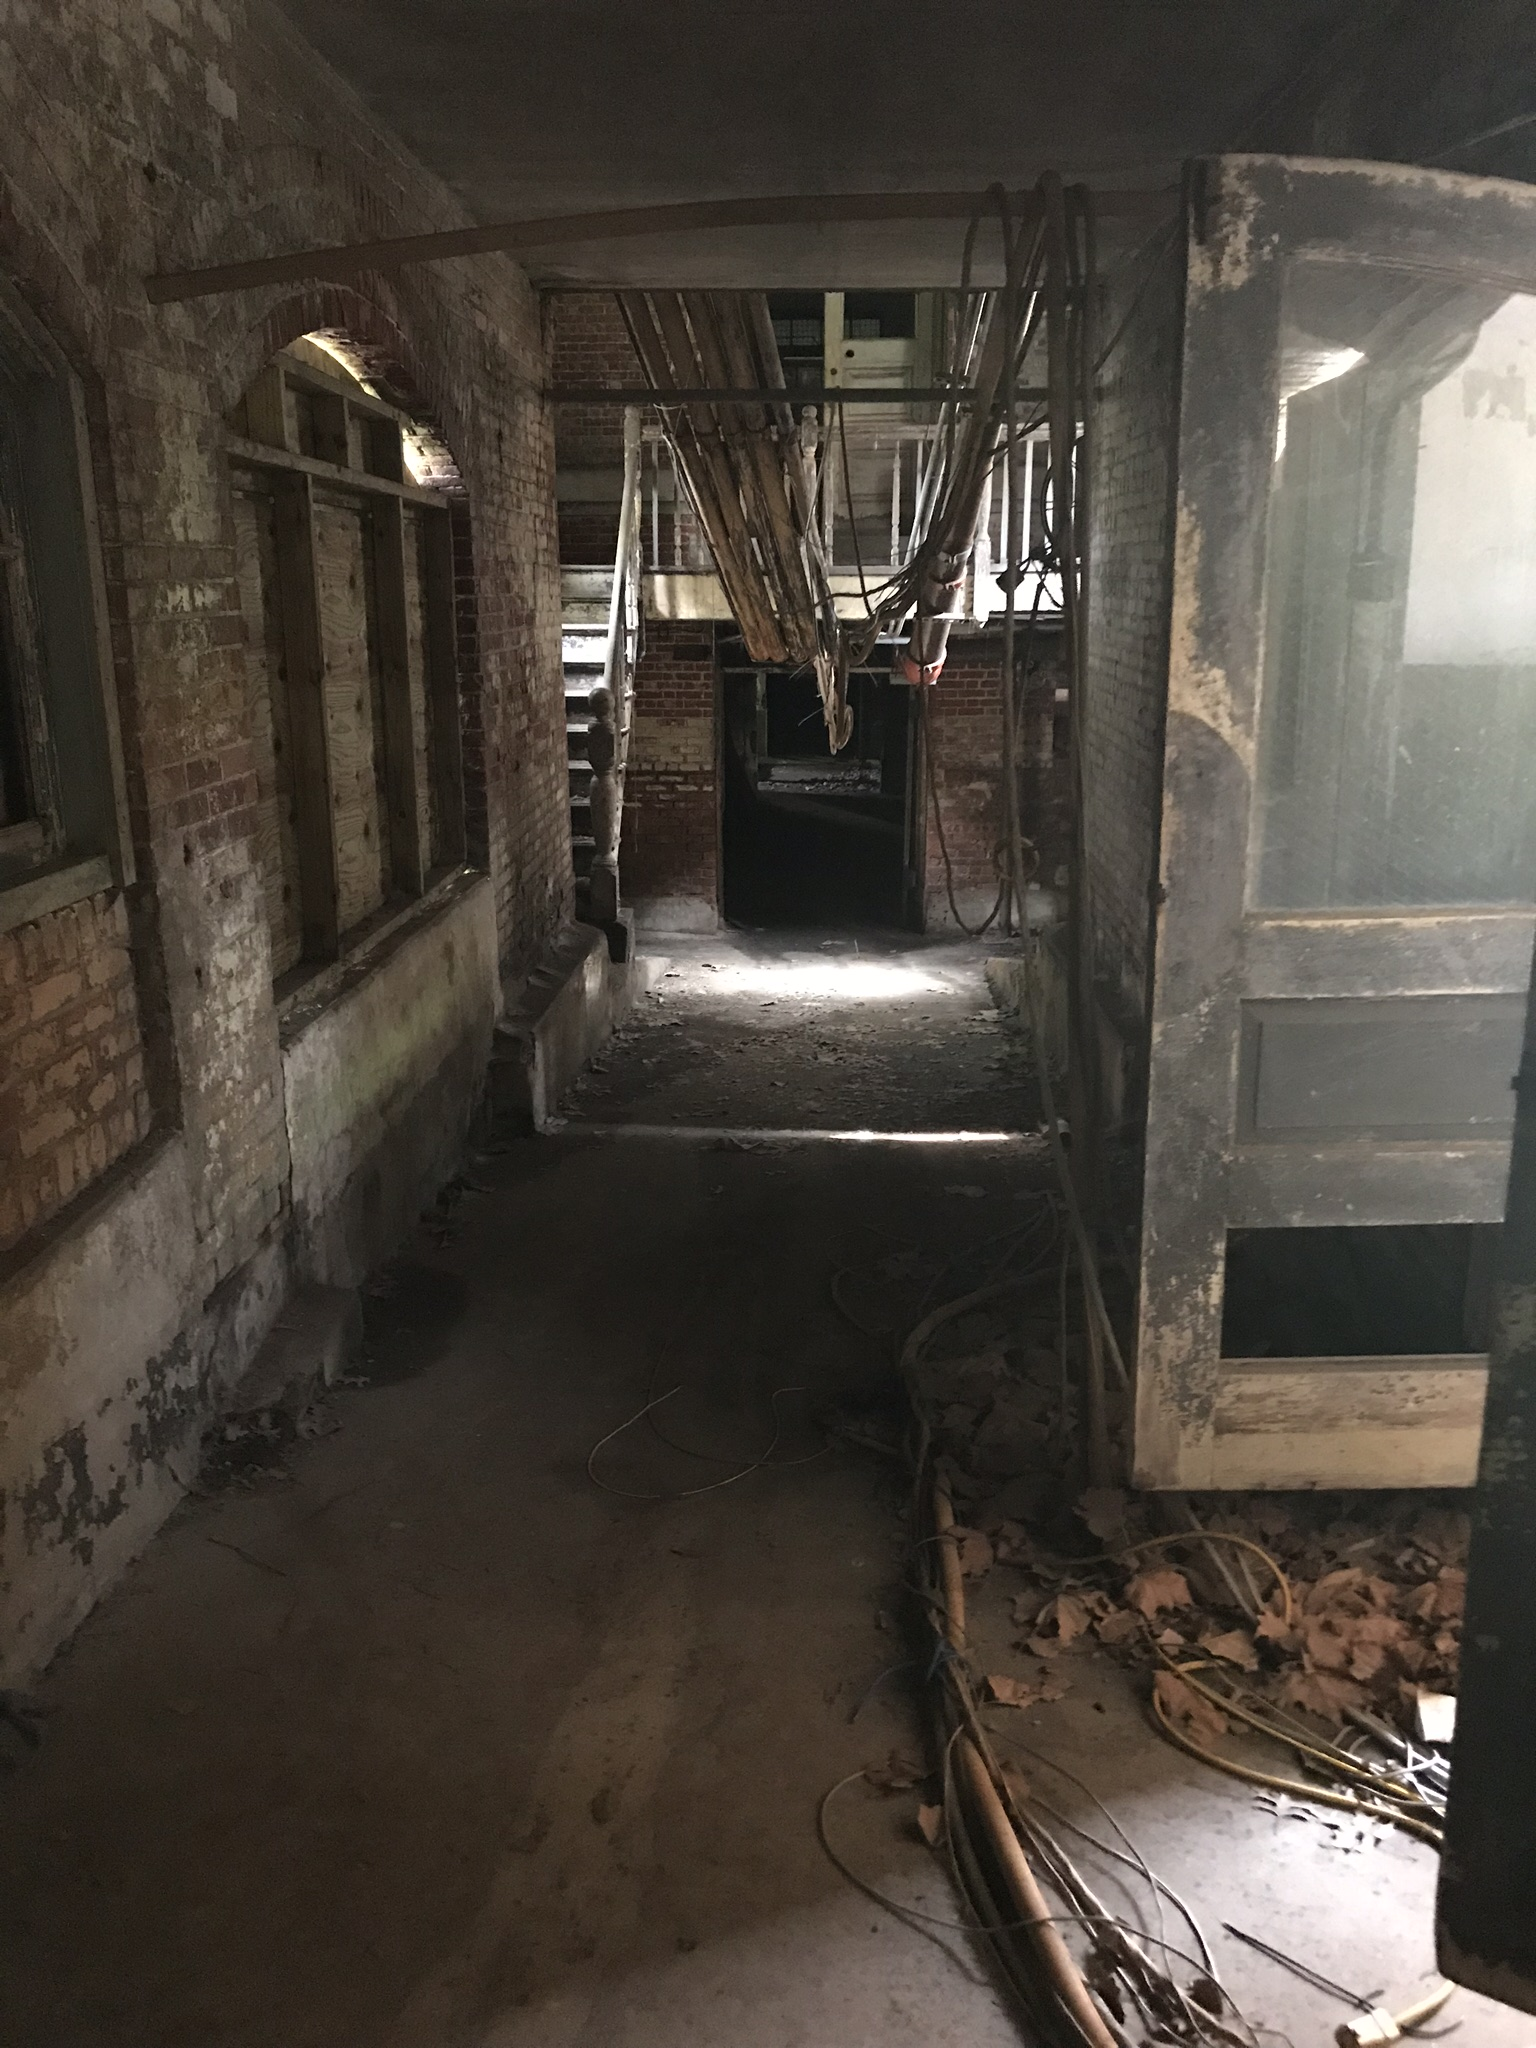 Hallway to the downstairs area…apparently that area haunted.